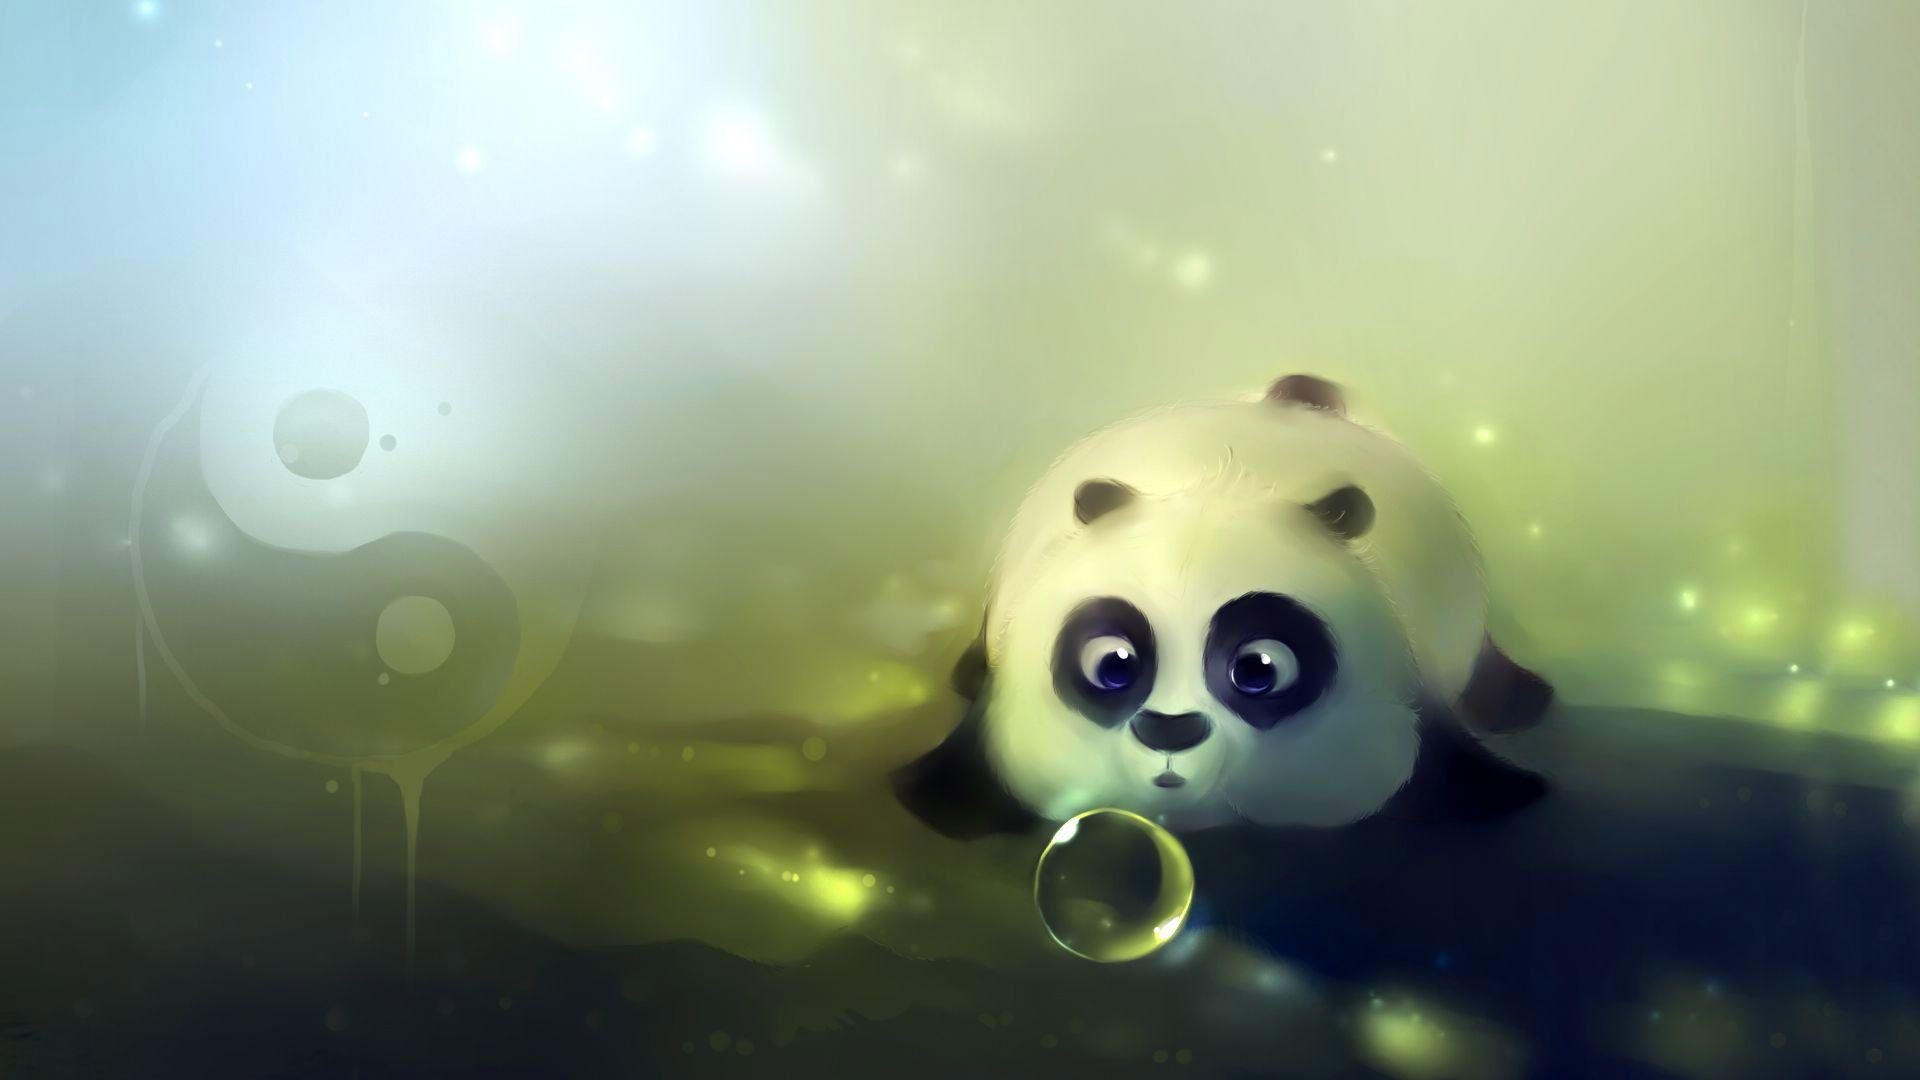 panda pictures hd wallpapers - photo #32